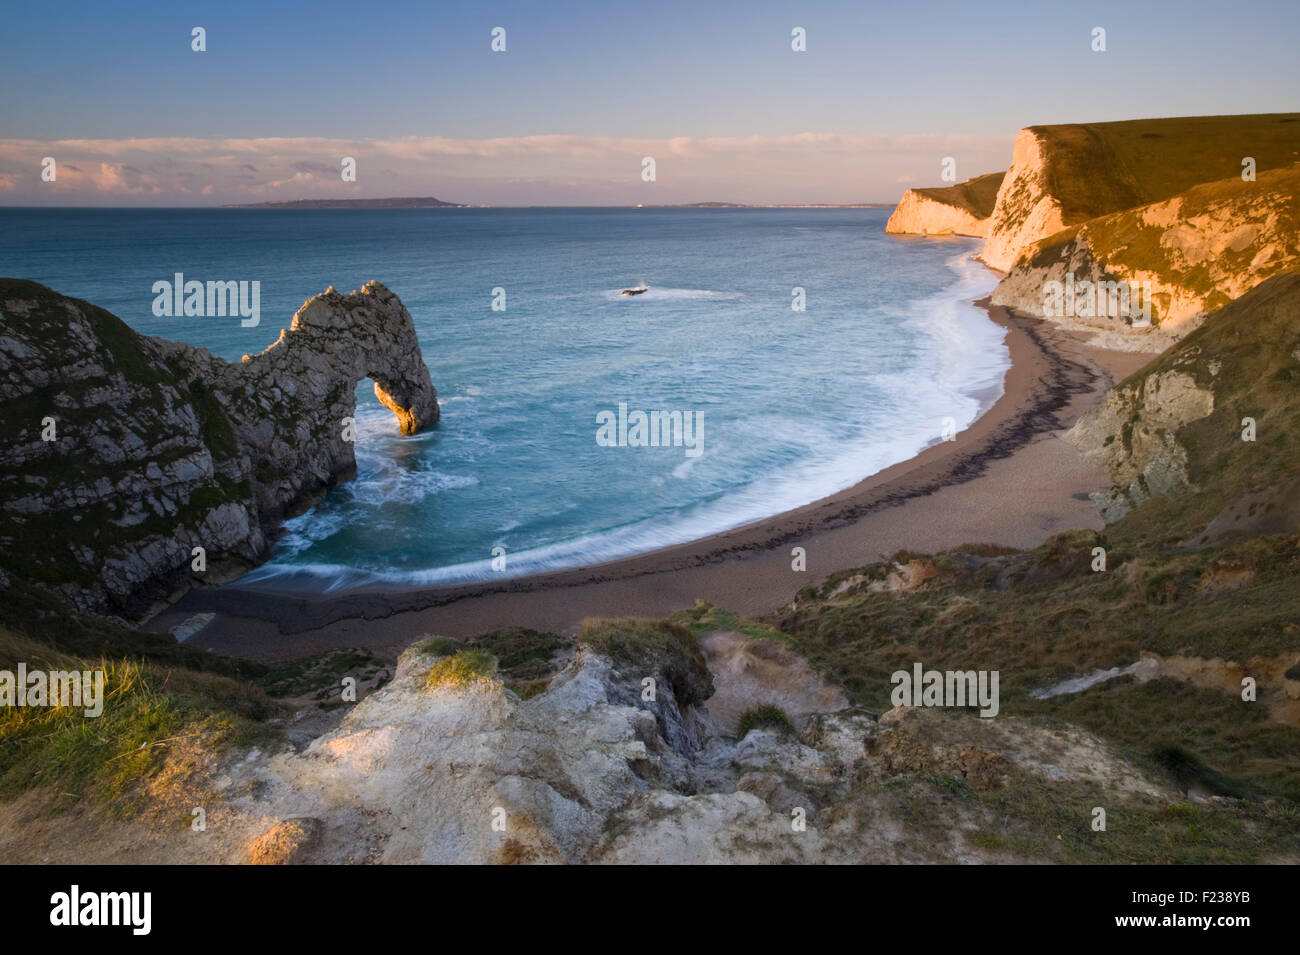 View of the limestone sea arch of Durdle Door near Lulworth on Dorset's Jurassic Coast, England, UK - Stock Image